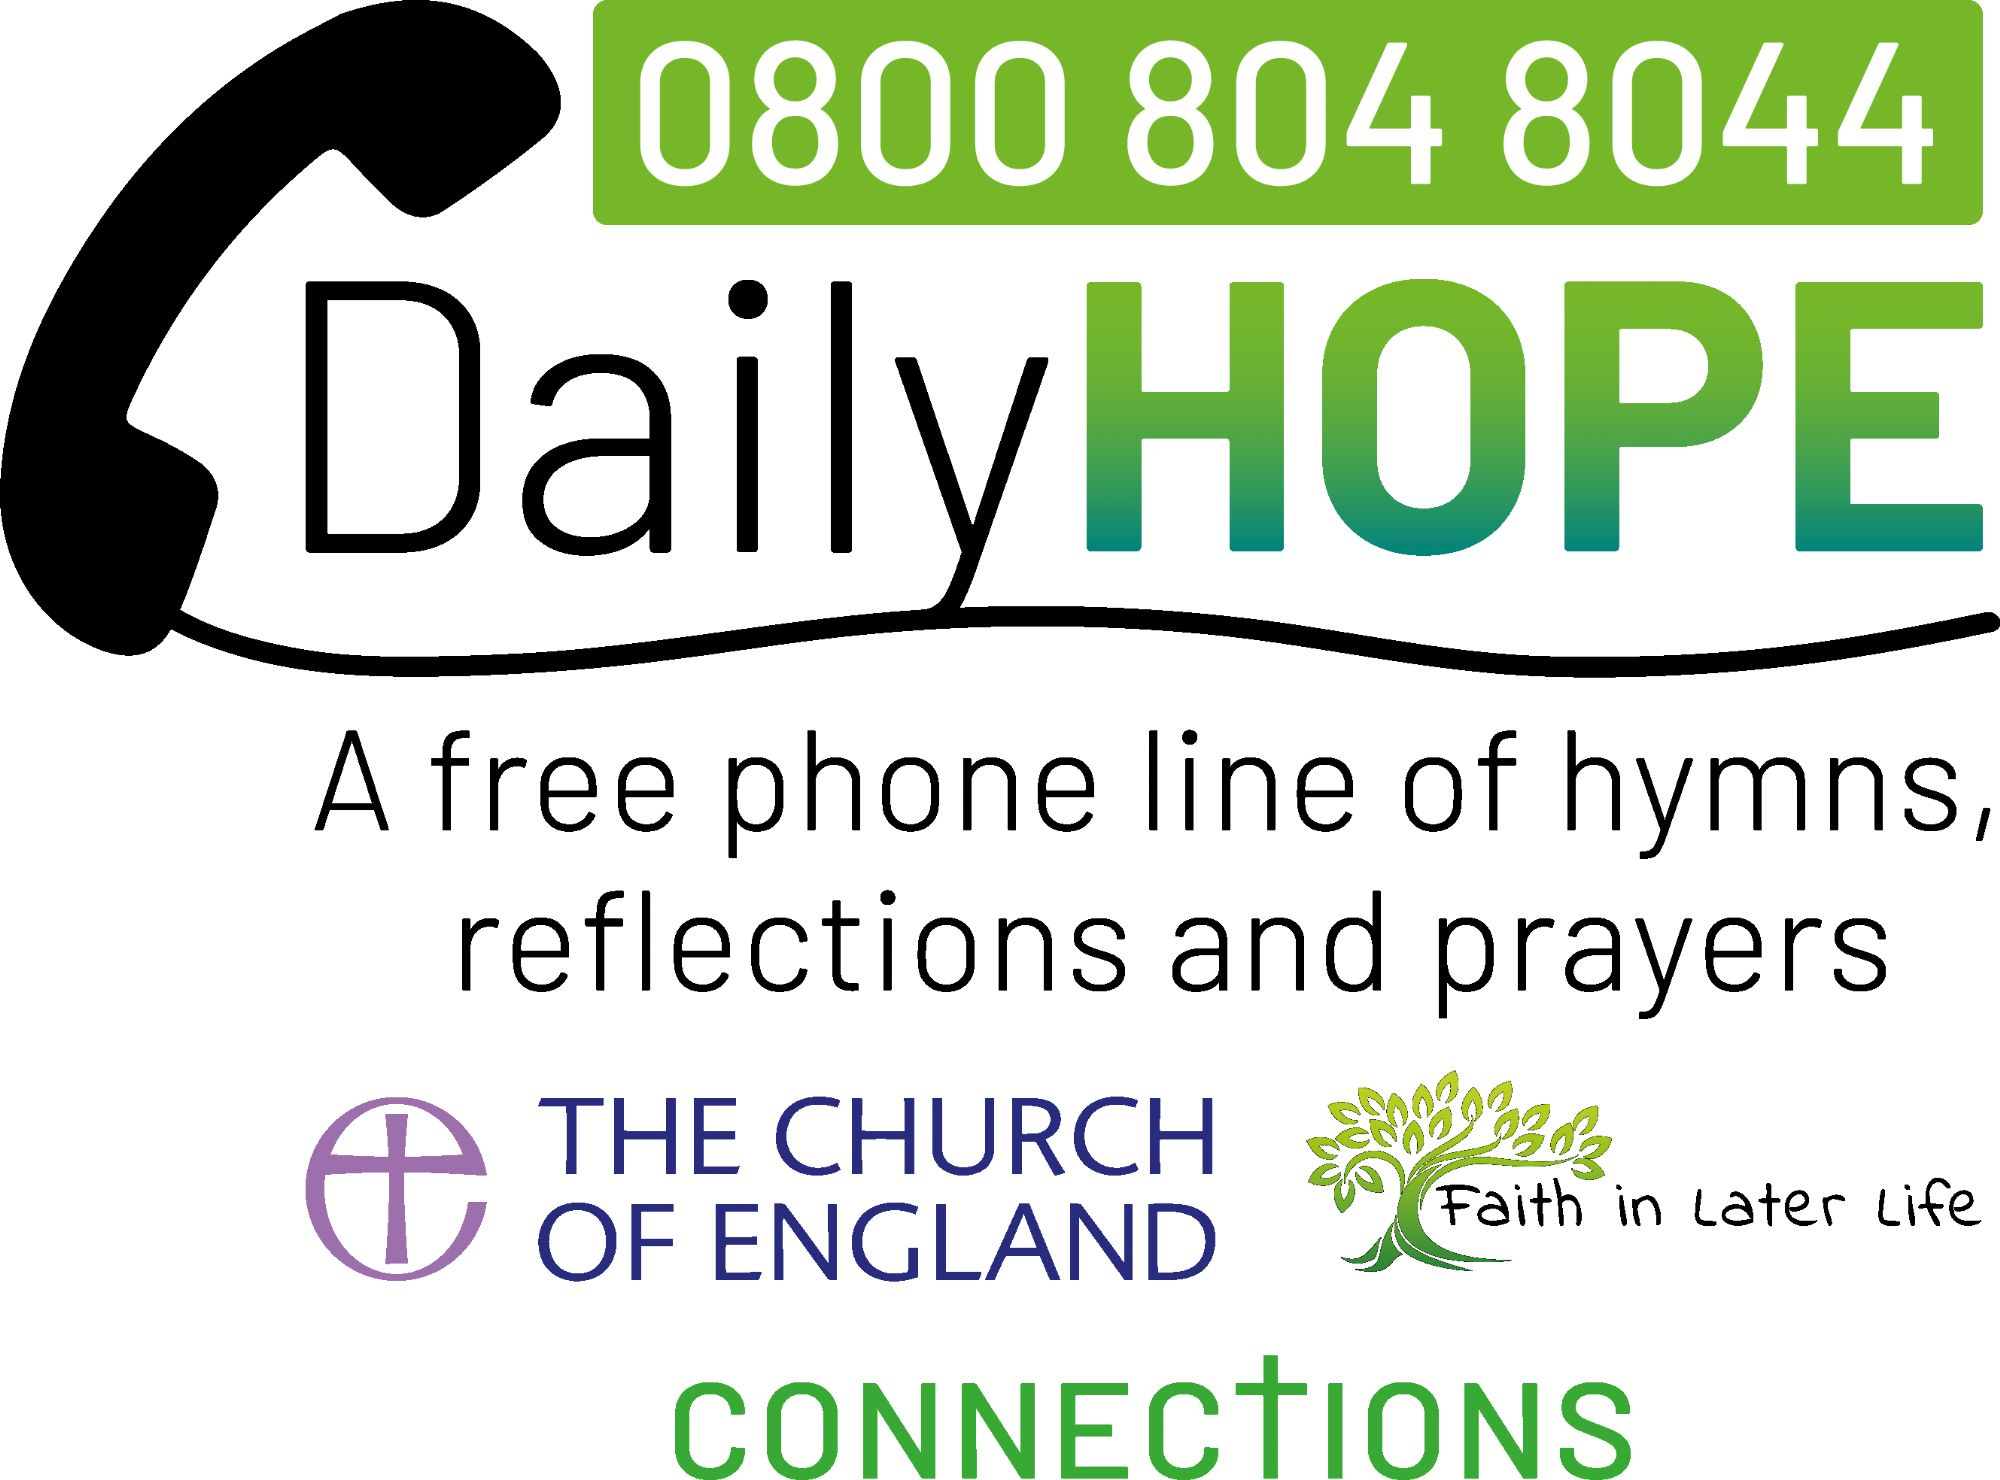 Daily Hope Phone line